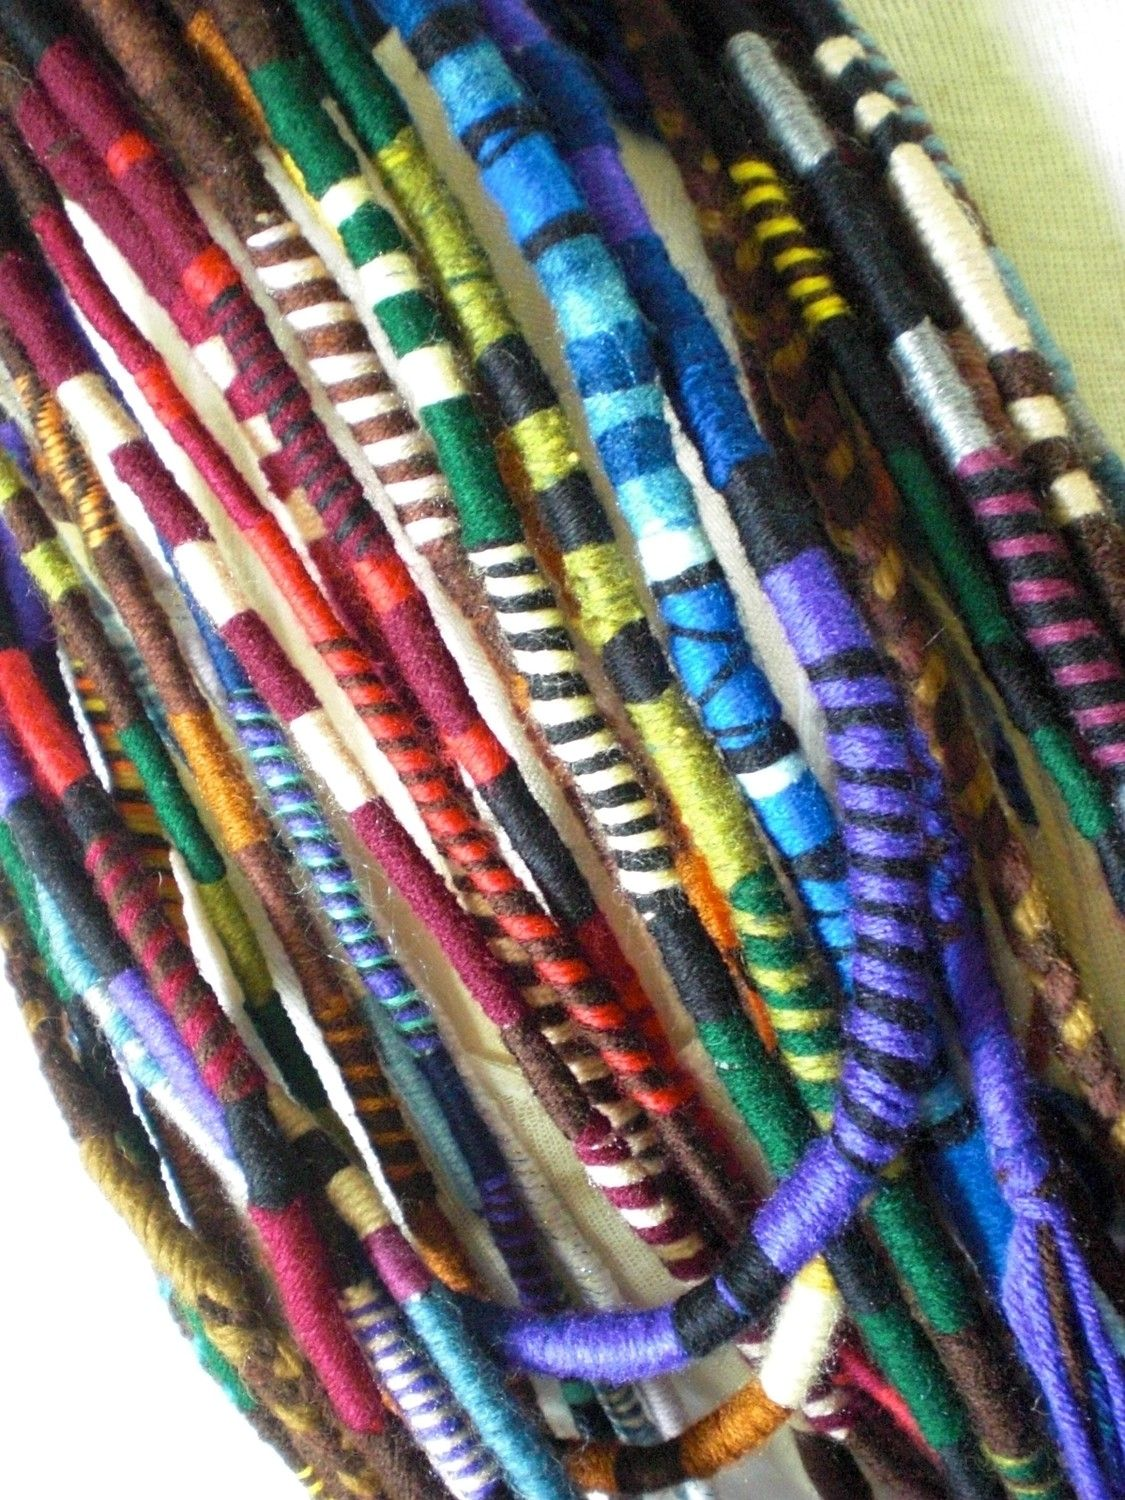 braiding yarn for kids